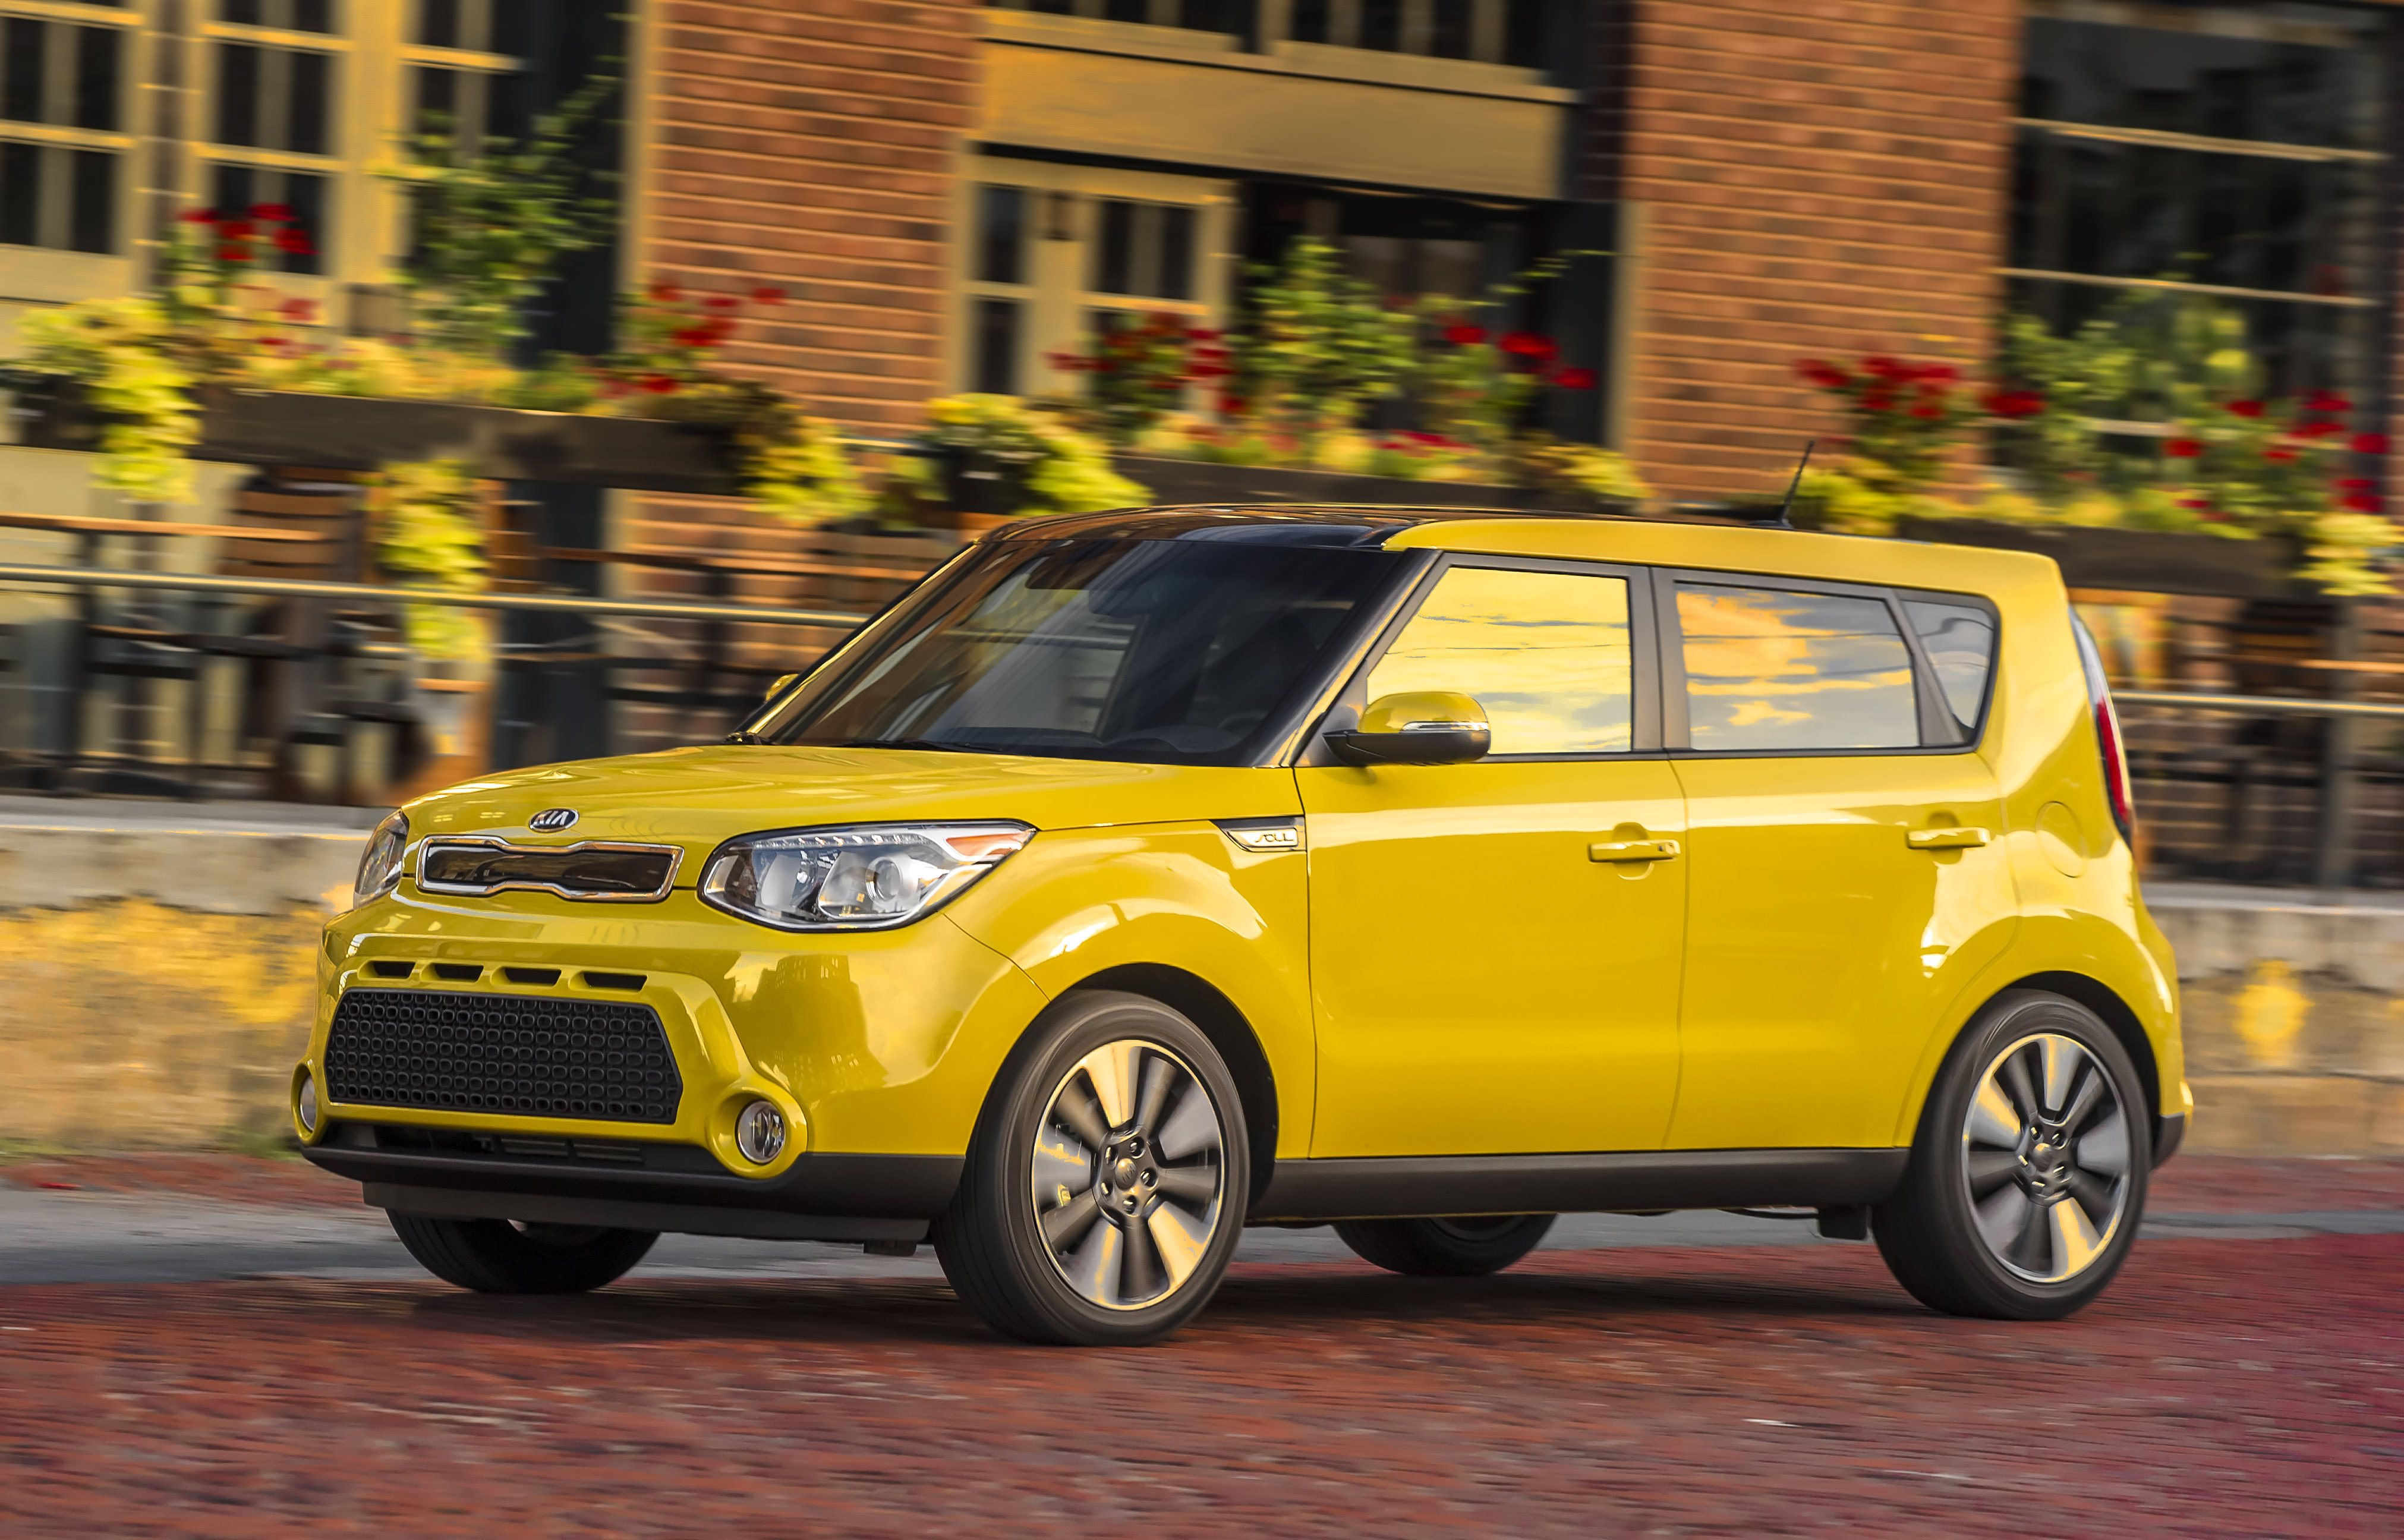 kia adds more features to 2016 kia soul lineup the news wheel. Black Bedroom Furniture Sets. Home Design Ideas